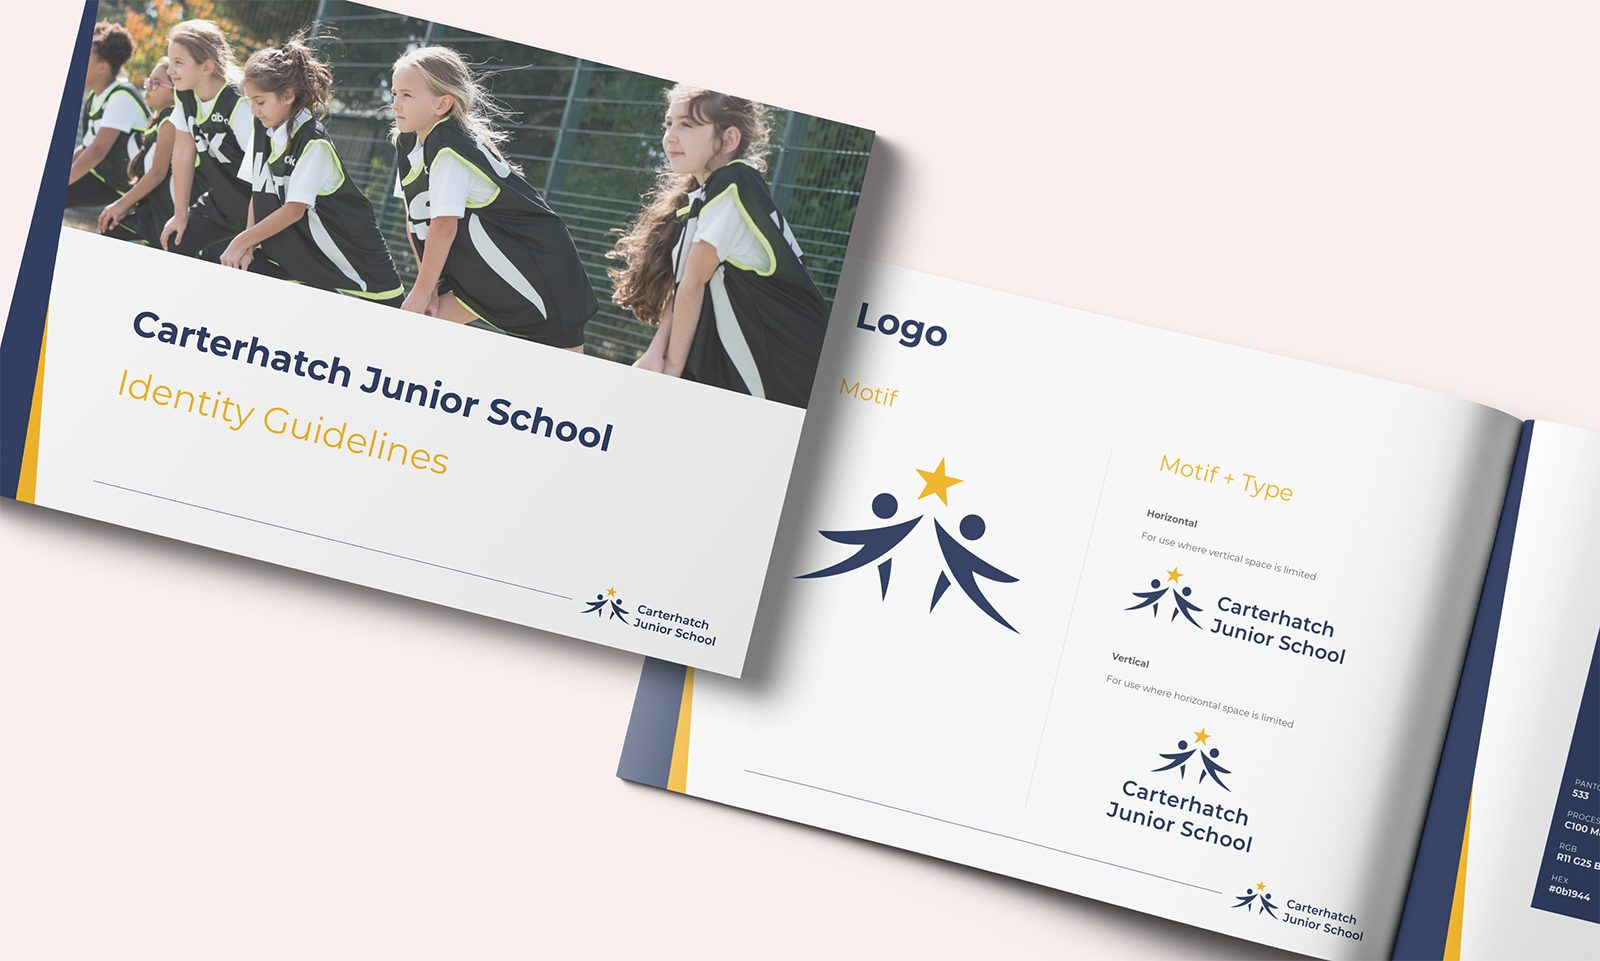 Carterhatch Junior School - identity guidelines